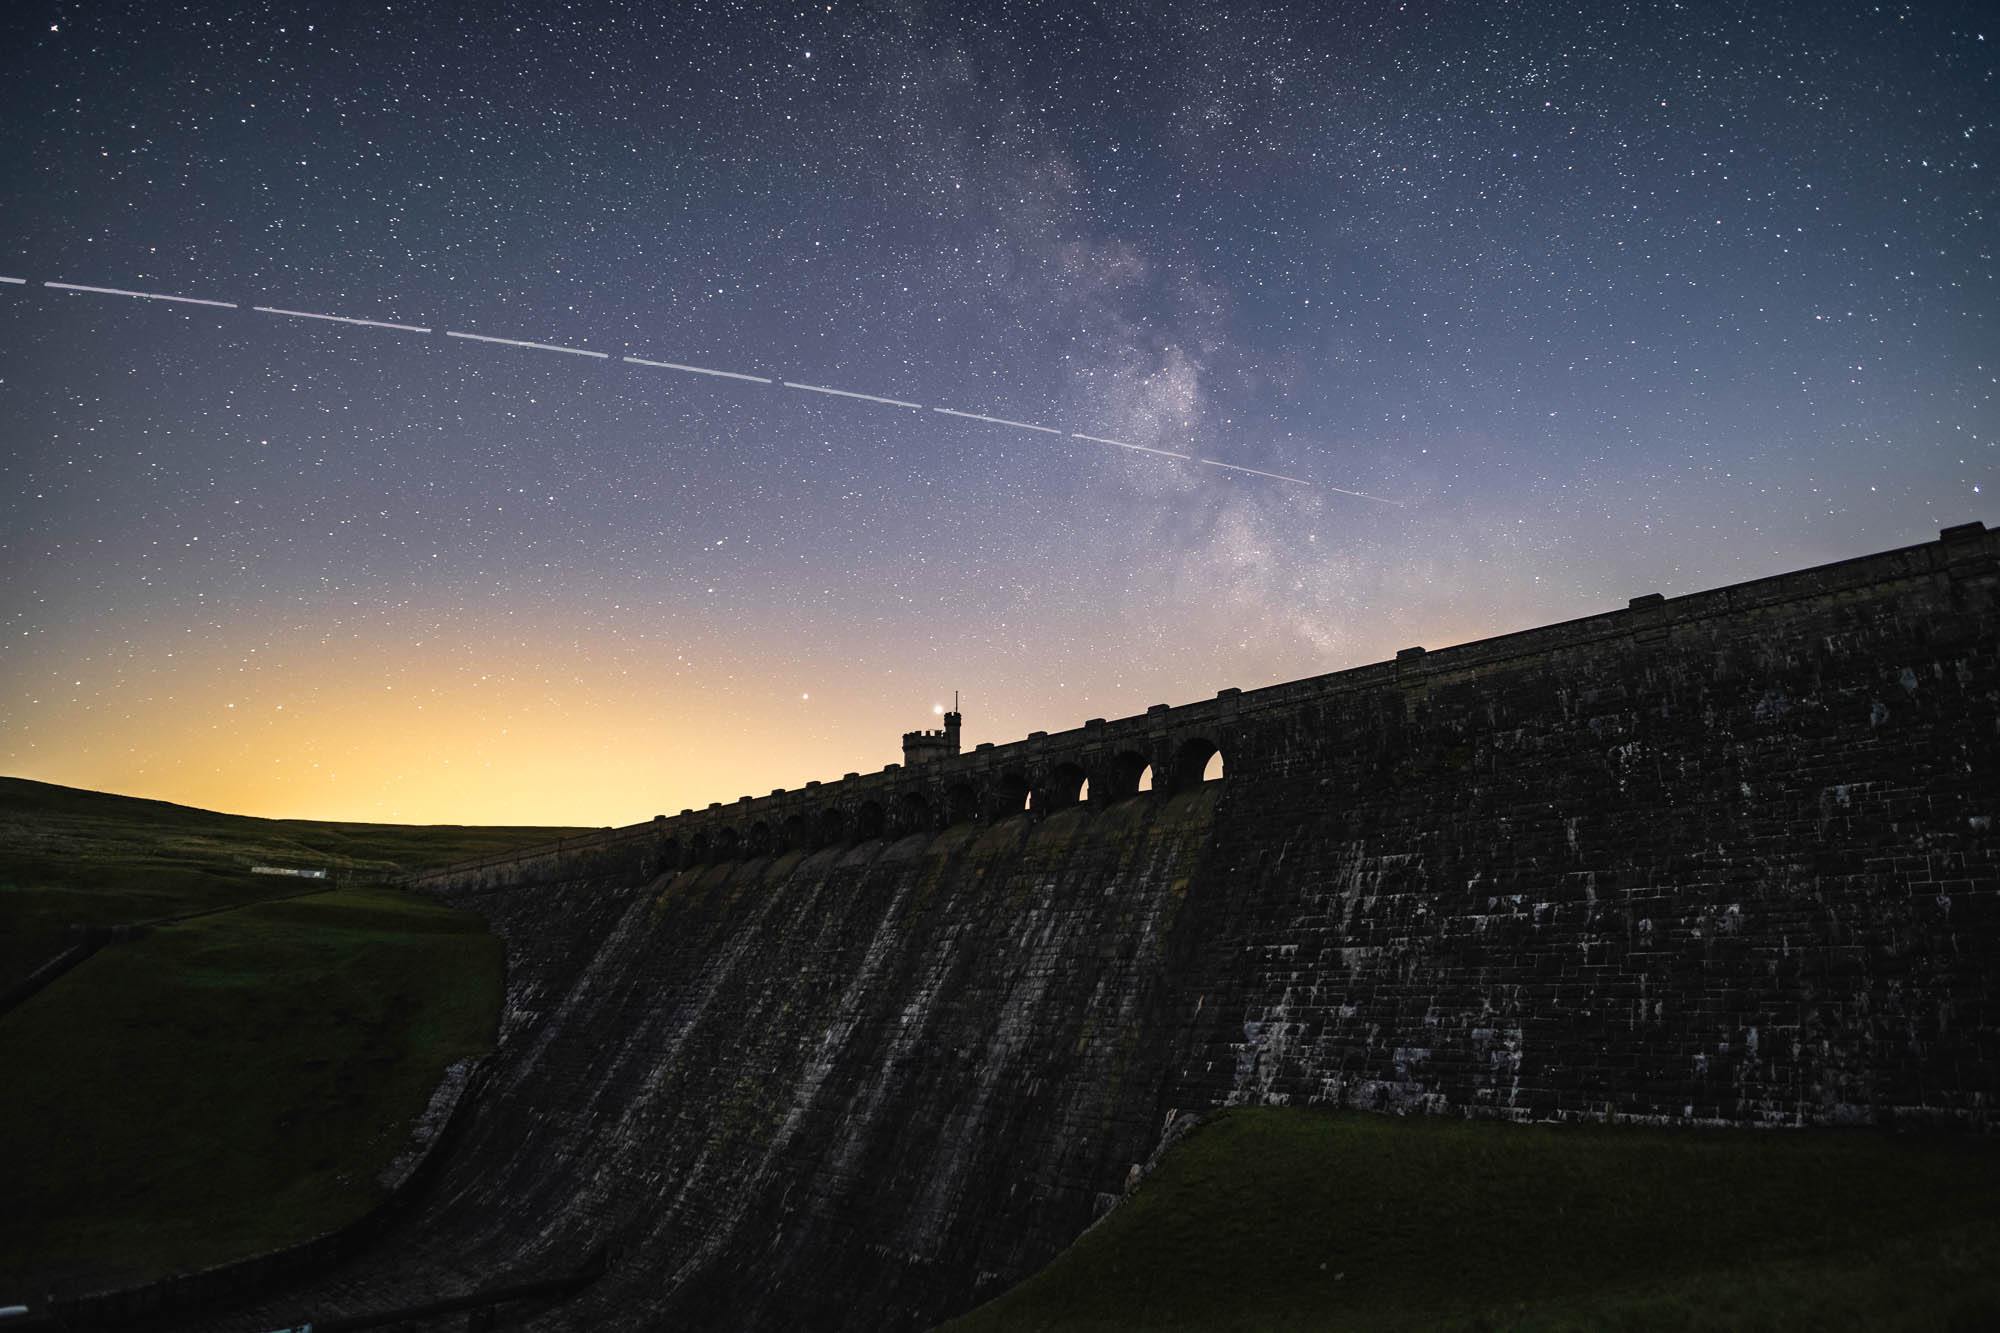 International Space Station floating above Angram Dam in Lofthouse, Yorkshire